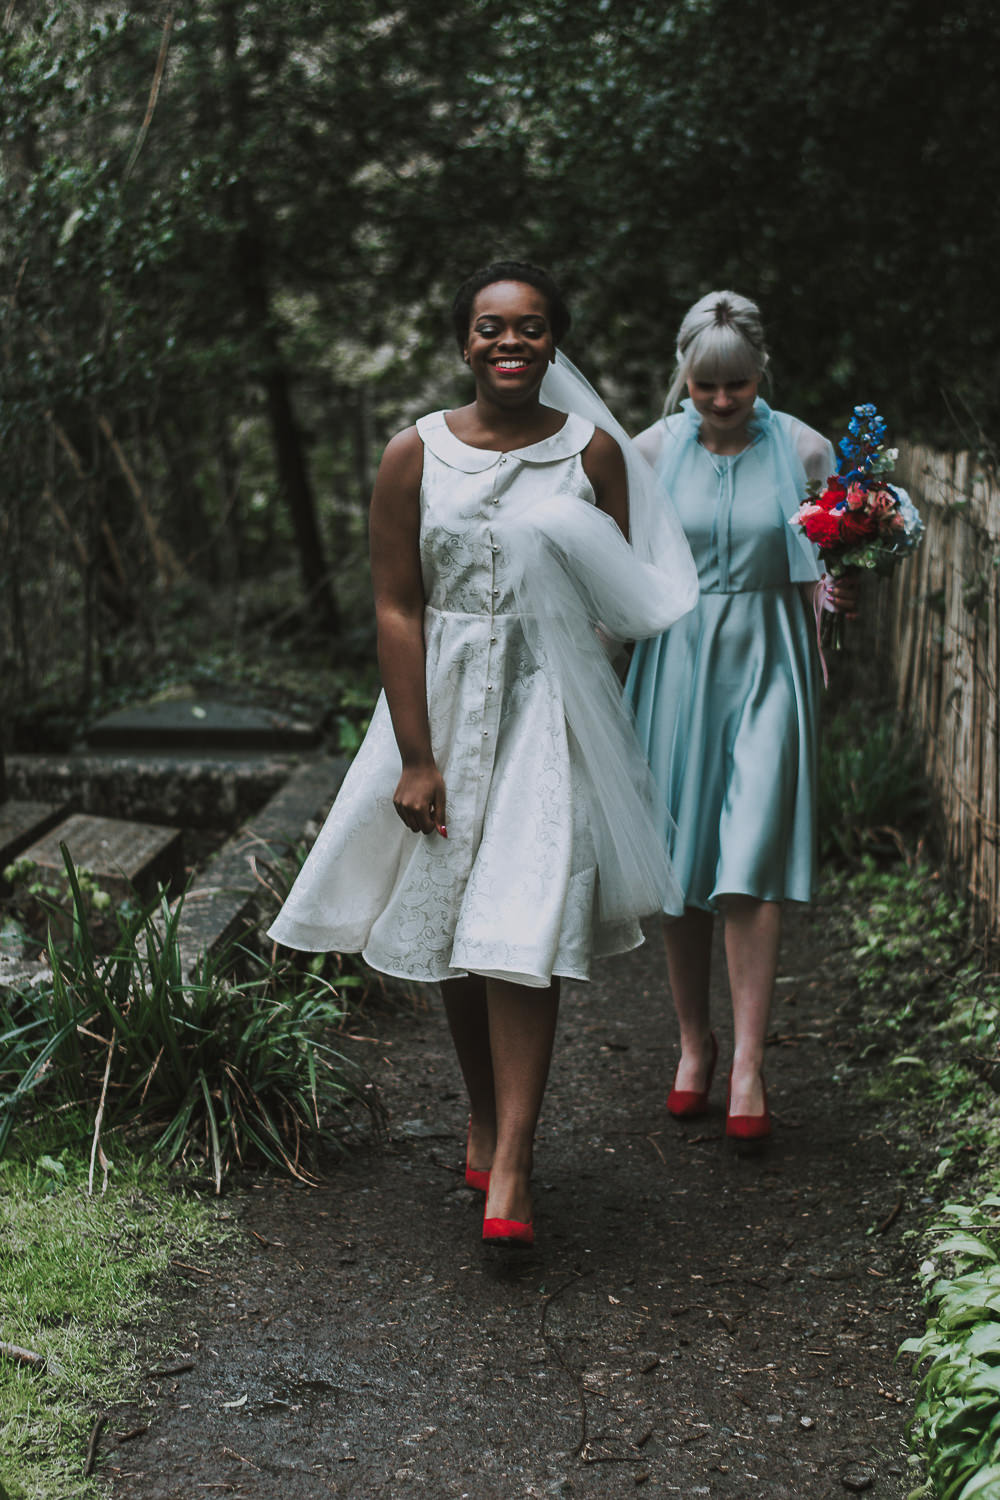 Dress Gown Bride Bridal Short Prom Peter Pan Collar Veil Wes Anderson William Morris Wedding Ideas Jessica Hill Photography